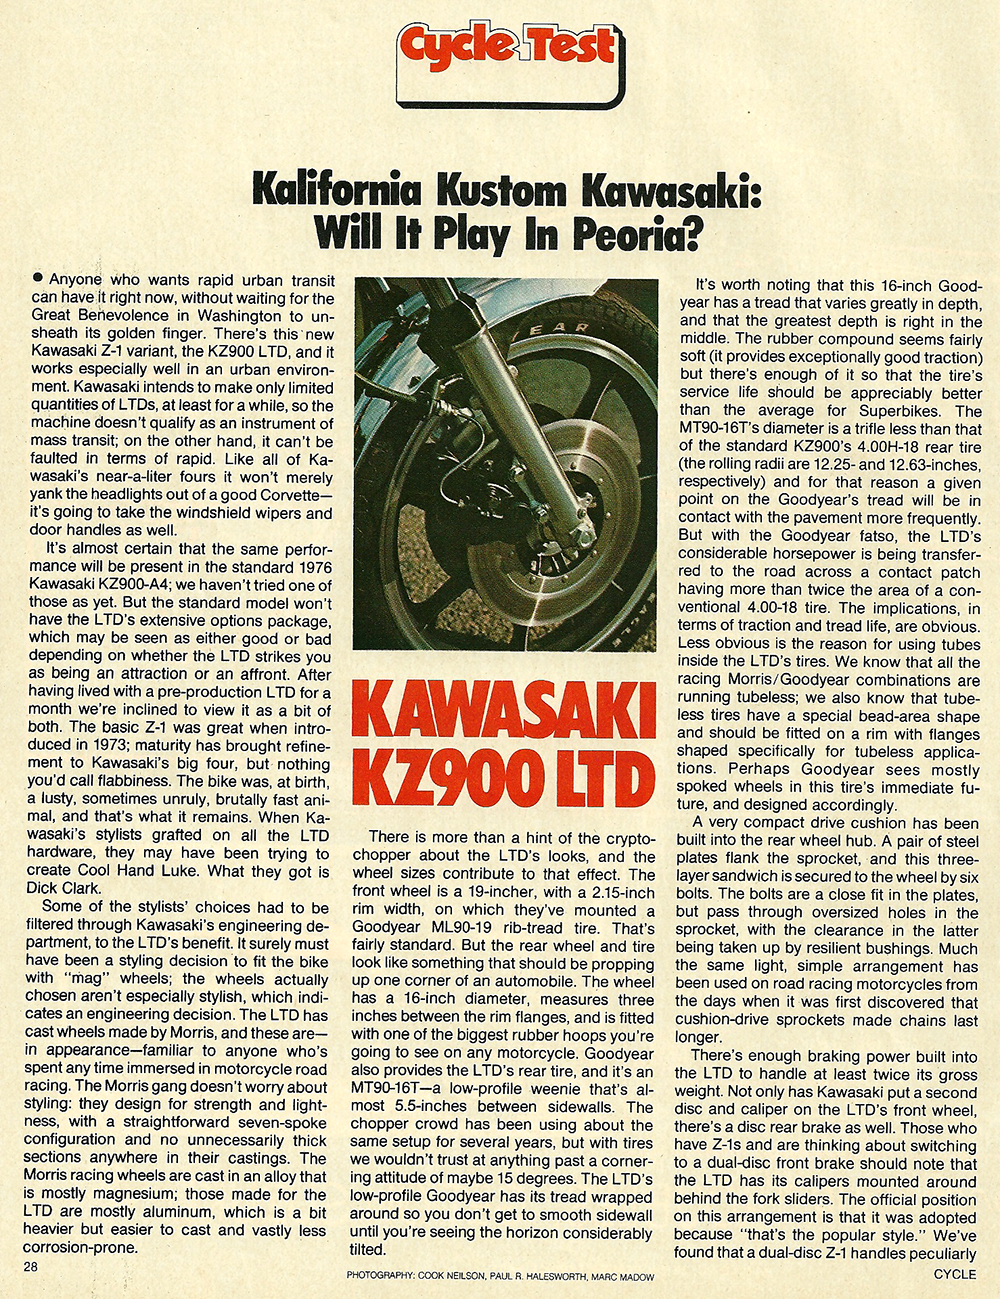 1976 Kawasaki KZ900 LTD road test 1.jpg